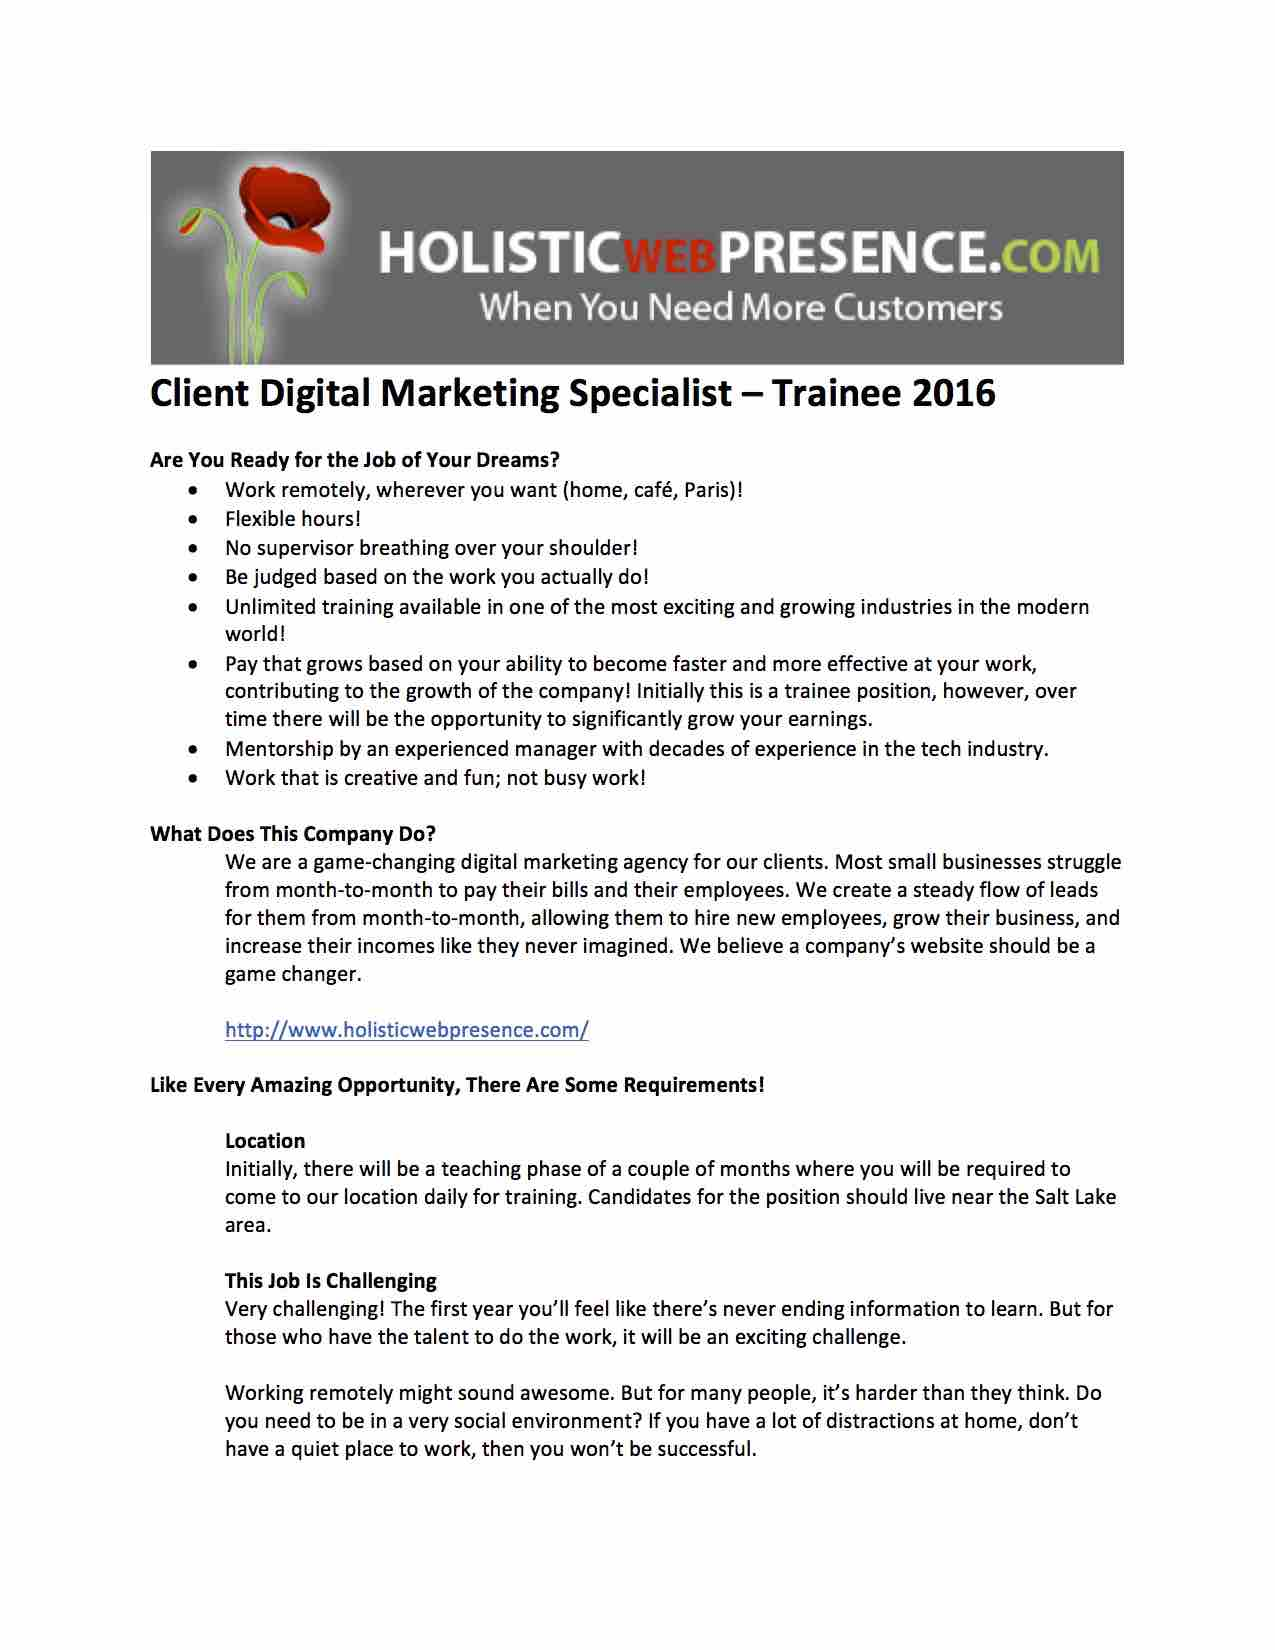 NOW HIRING Dream Job Available Client Digital Marketing – Digital Marketing Job Description